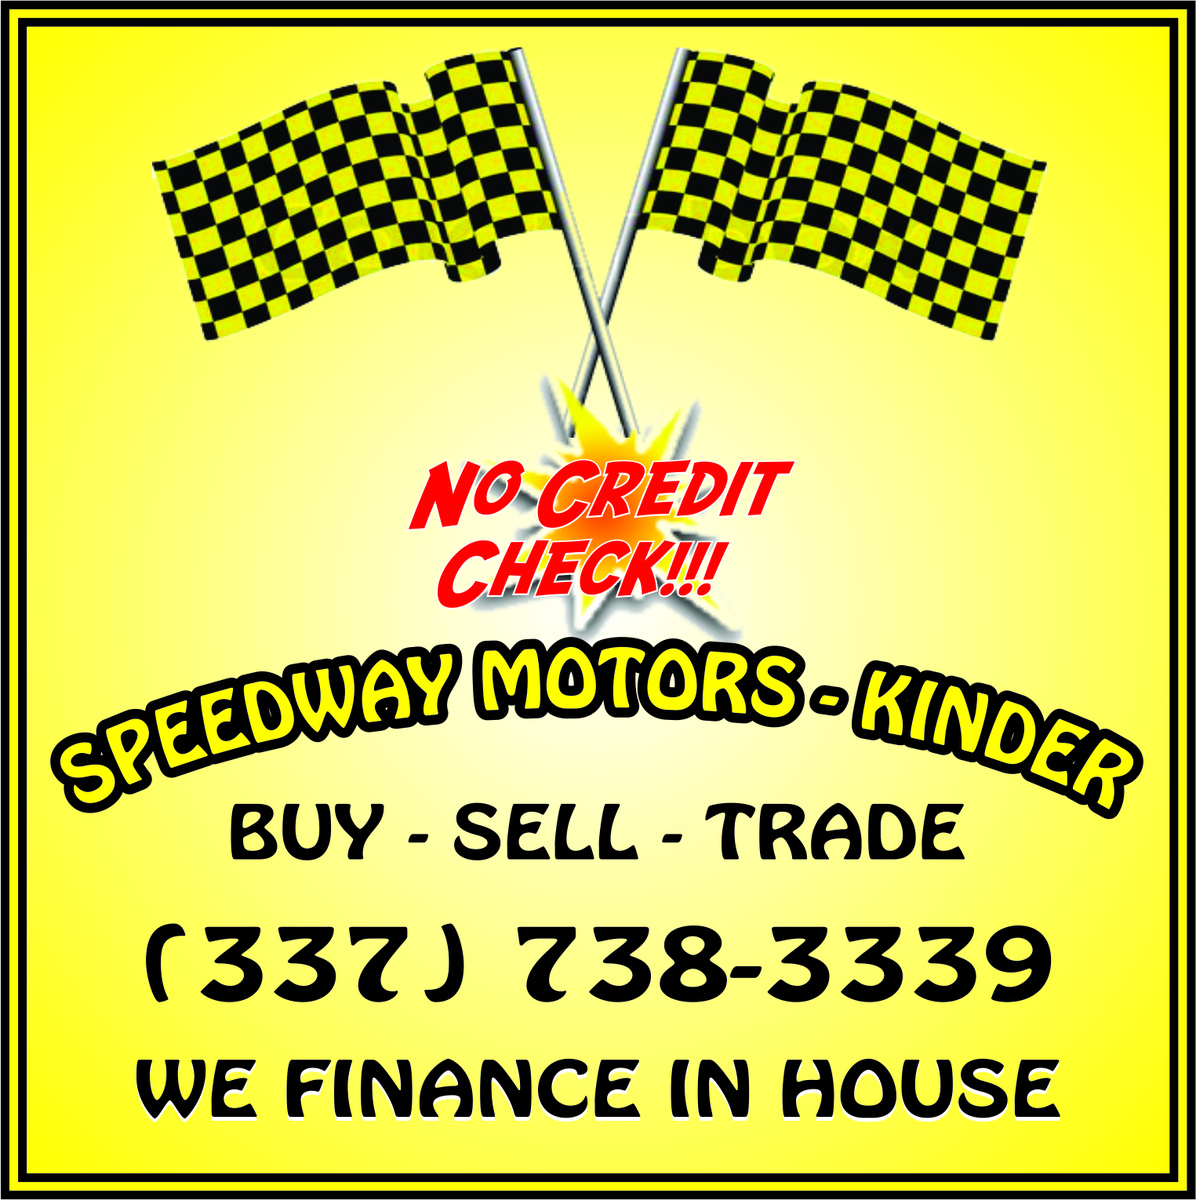 Speedway motors kinder kinder la read consumer reviews for Speedway motors lake charles